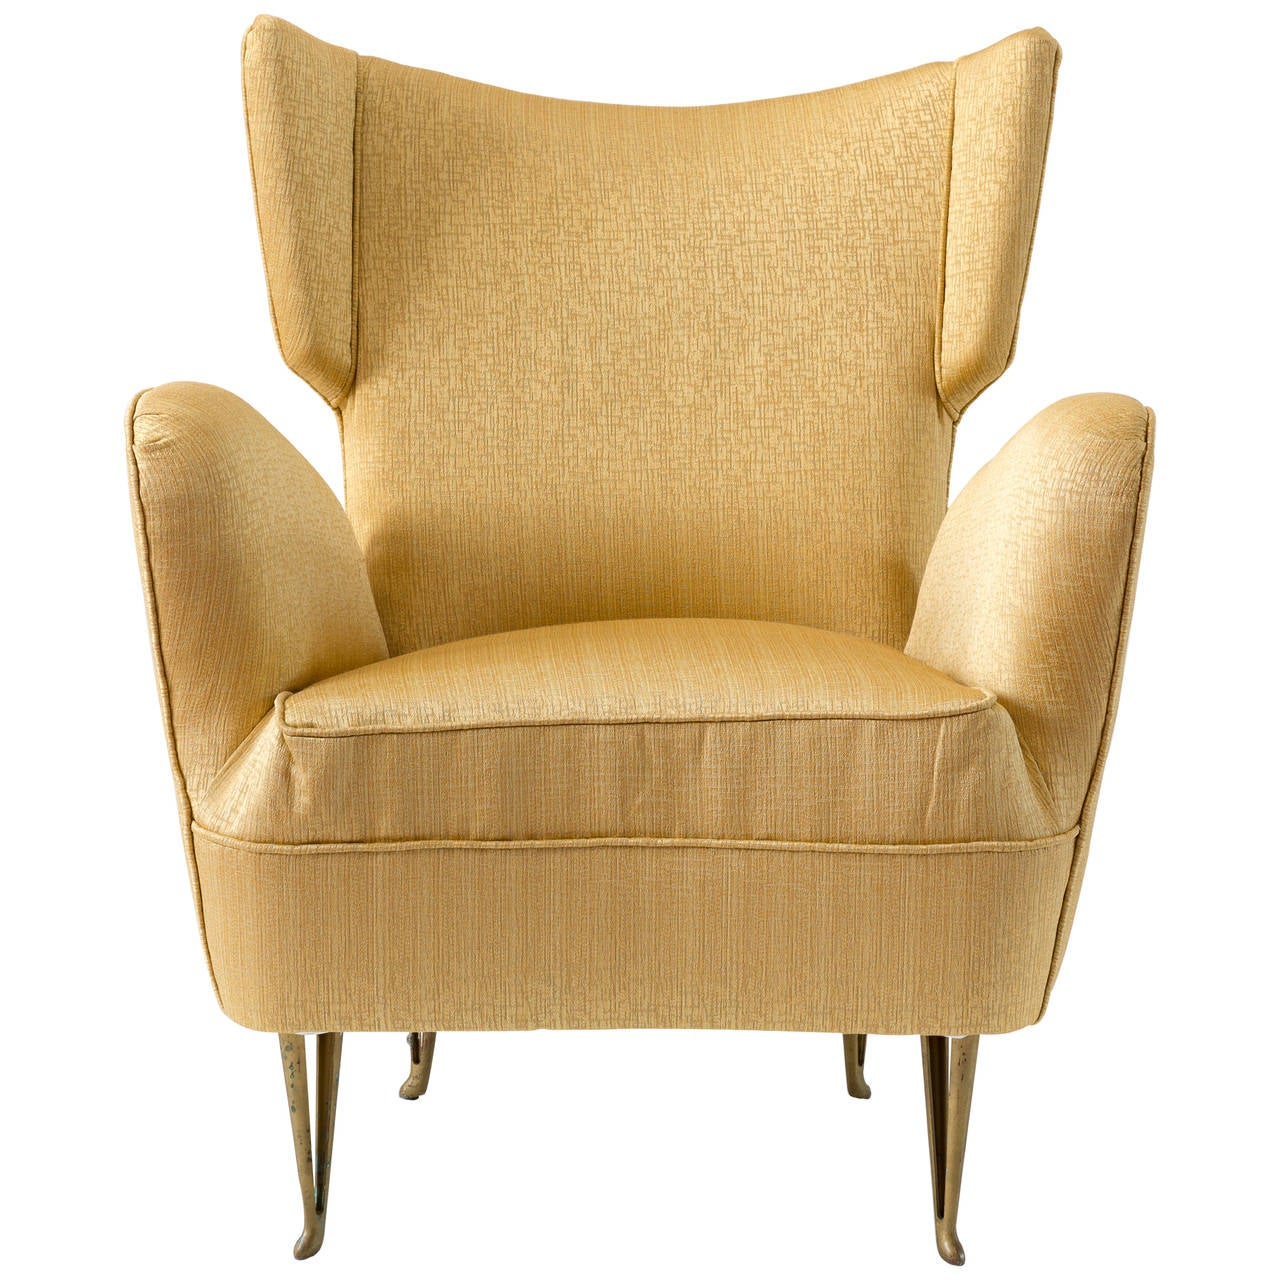 Good Elegant Armchair By Isa Bergamo, 1950 For Sale